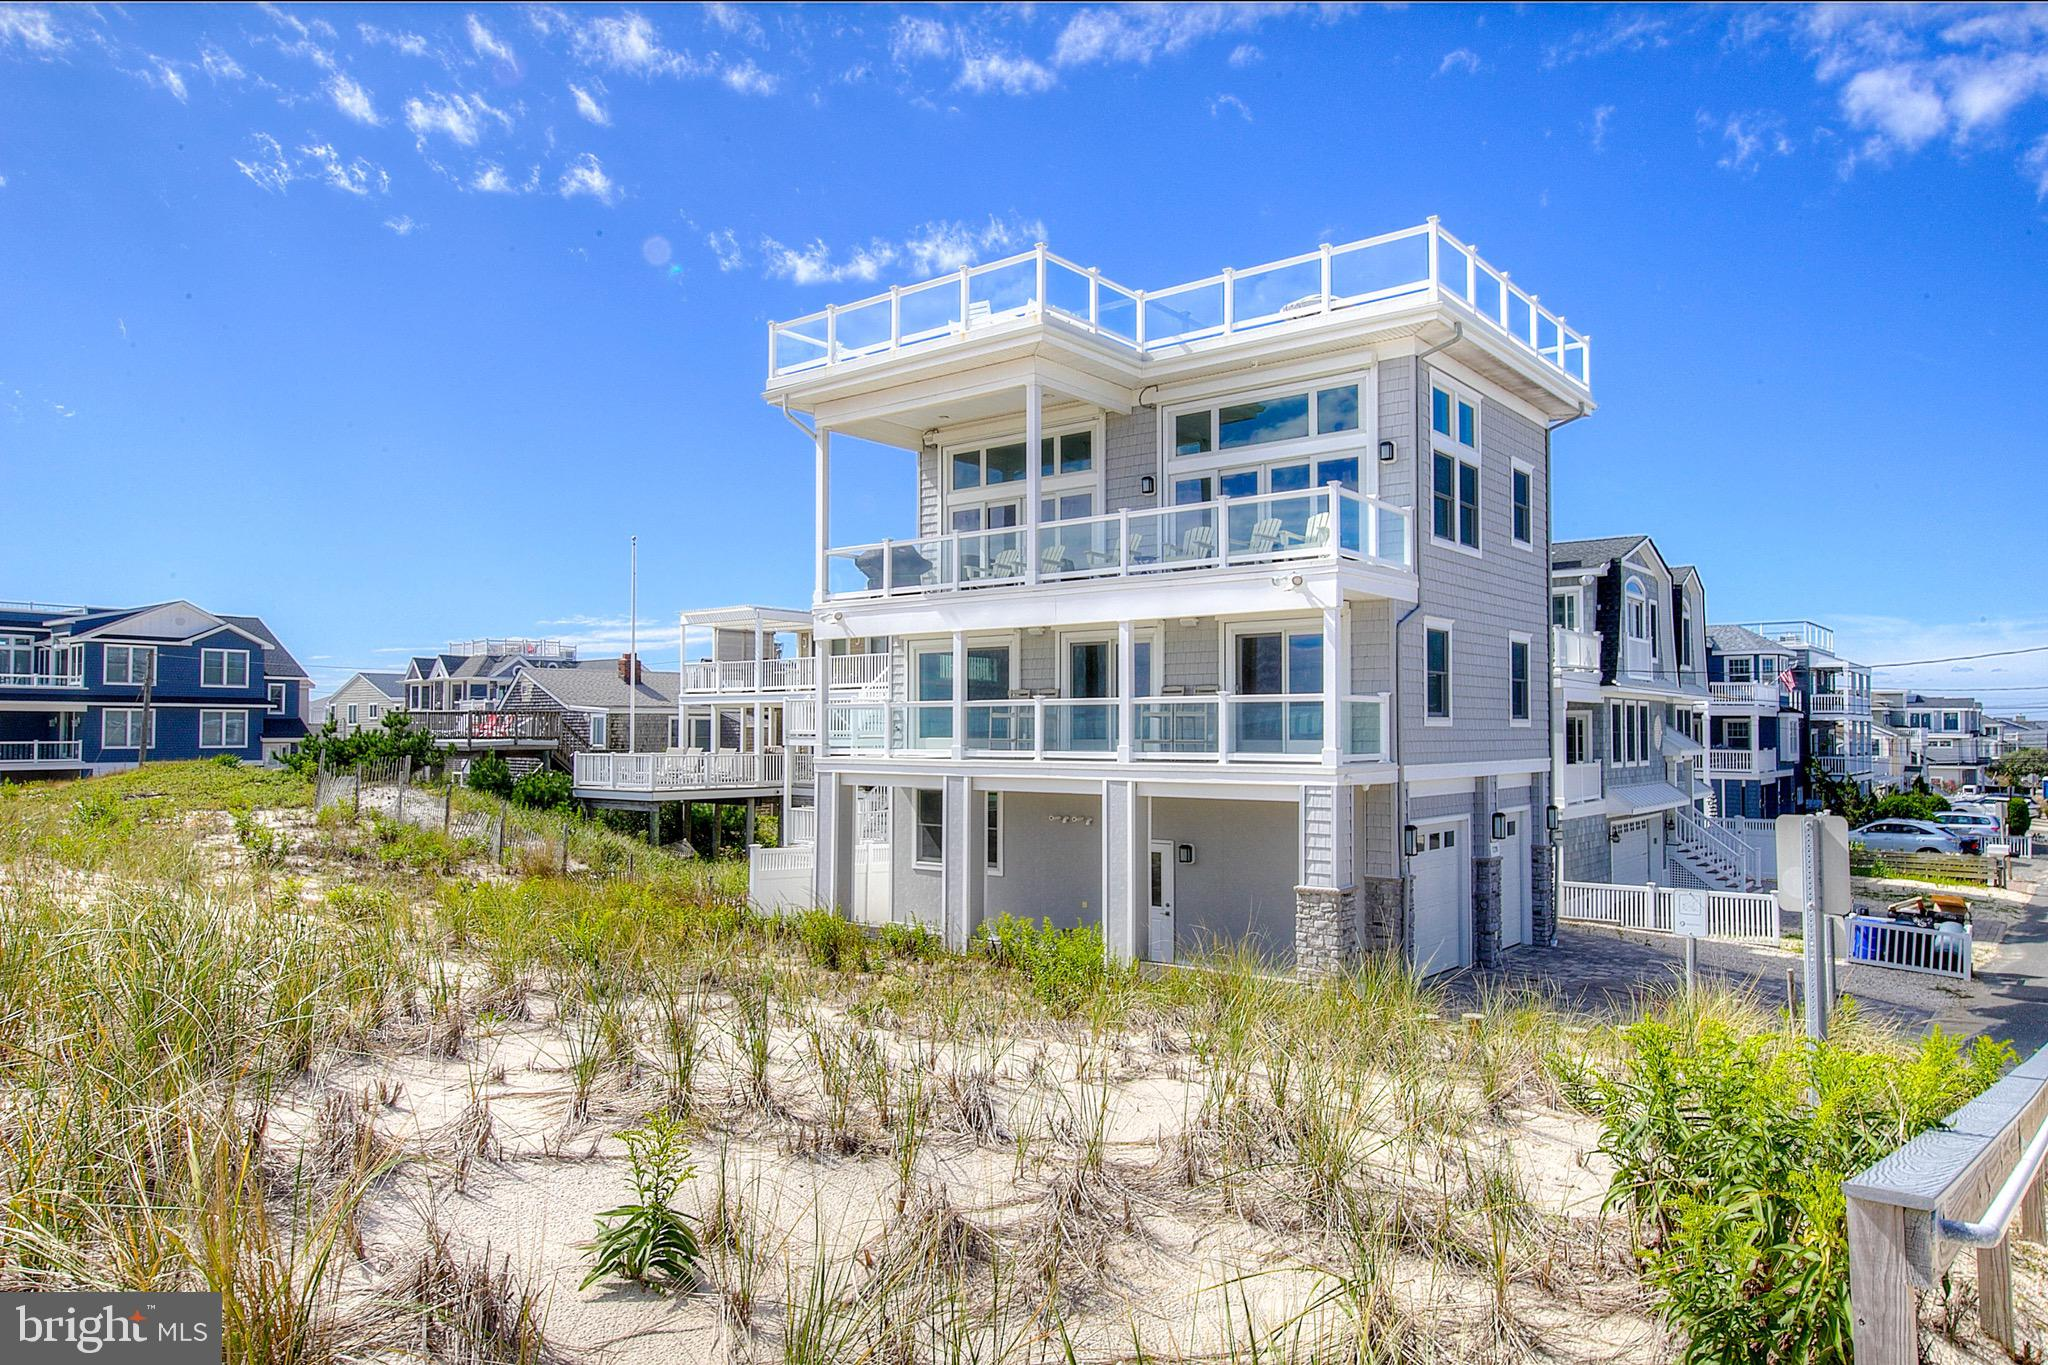 Steps from having your toes in the sand this OCEANFRONT single family home is located in The Peahala Park section of Long Beach Township. This reverse living home offers 3 floors of living space. The first floor is equipped with a sizable bedroom, full bathroom and laundry room. The 3 stop elevator makes reverse living an ocean breeze. The second floor features 4 bedrooms including an ensuite with deck access and ocean views. The open concept third floor offers a living room with a gas stone fireplace, a dining room and gourmet kitchen featuring stainless steel appliances, a tile backsplash and dazzling Quartz countertops. Enjoy panoramic ocean views and watch the sunrise from each of the 3 decks including a rooftop deck equipped with a 8 person hot tub. Some other home features include, engineered hardwood flooring throughout, an outdoor shower, 2 tankless water heaters for maximum efficiency, staircase riser lighting, remote control shades/storm shutters, a sonos speaker system throughout and a central vac system. This home is being sold turnkey furnished. Just pack your bags and start enjoying all Long Beach Island has to offer. Don't miss the opportunity to own your very own oasis in the sand at Sand Dune Lane.